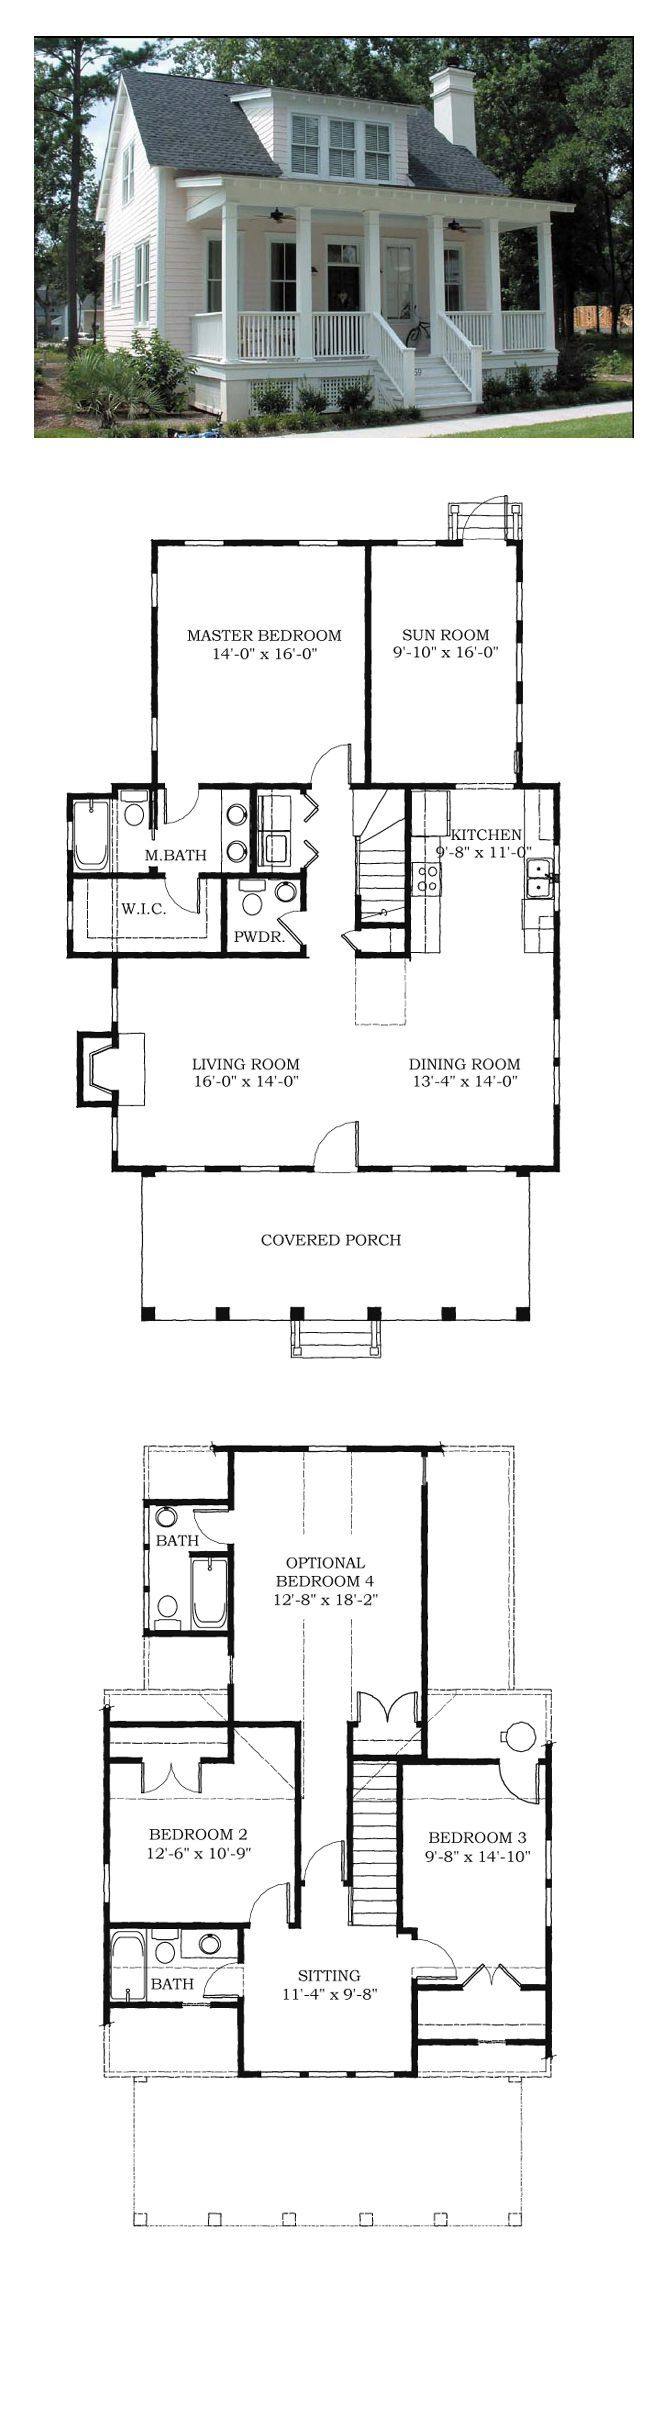 House Plan Chp 38703 At Coolhouseplans Com Small House House Floor Plans House Plans